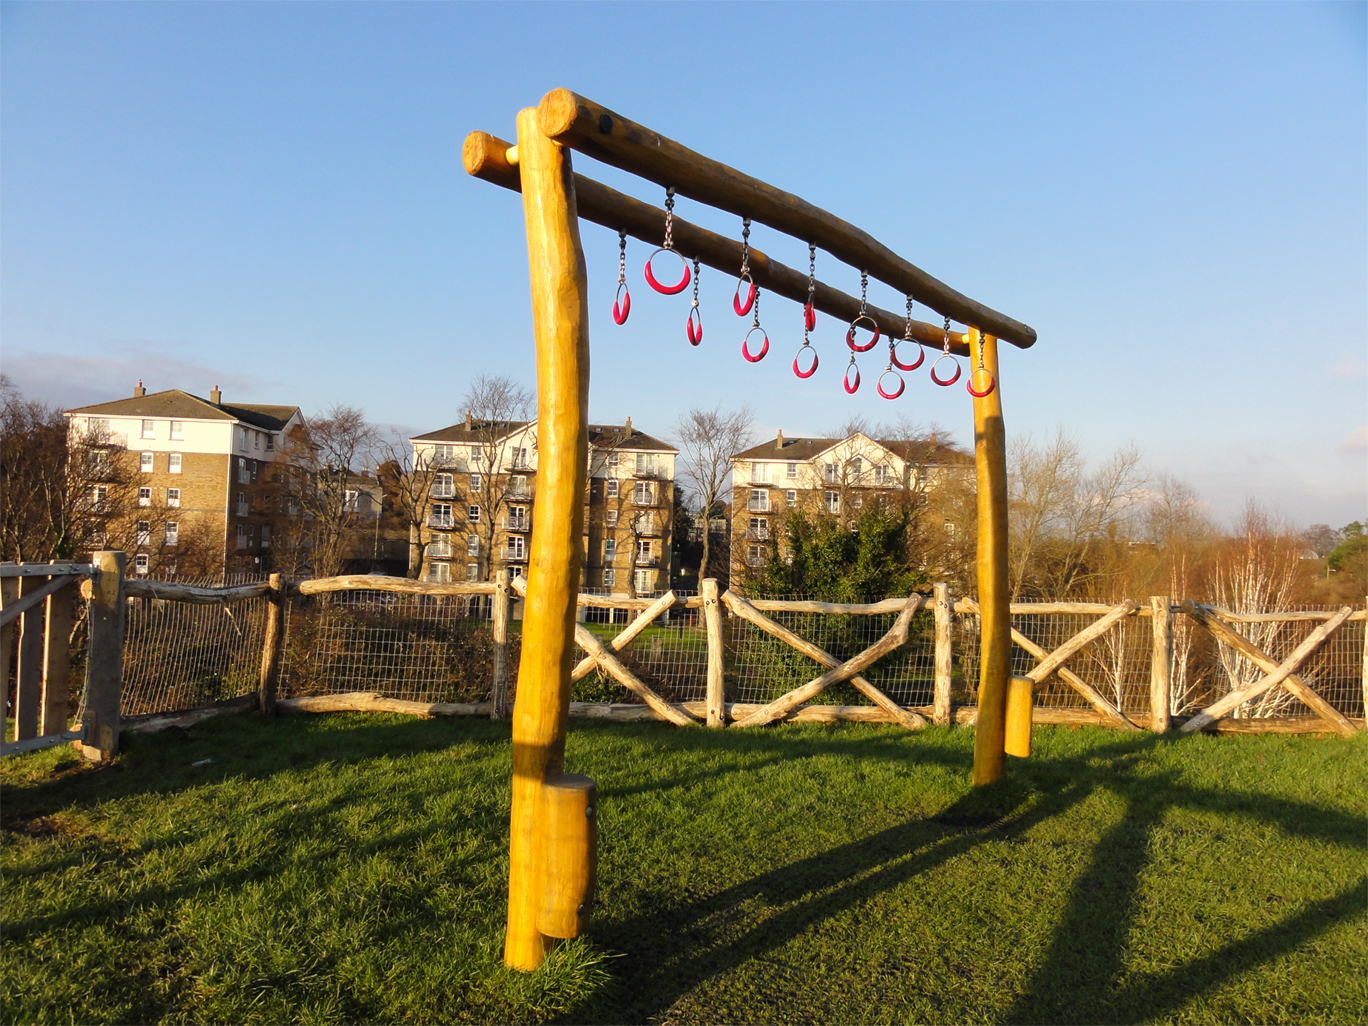 Playground for Mullingar, Westmeath by CPCL 2016